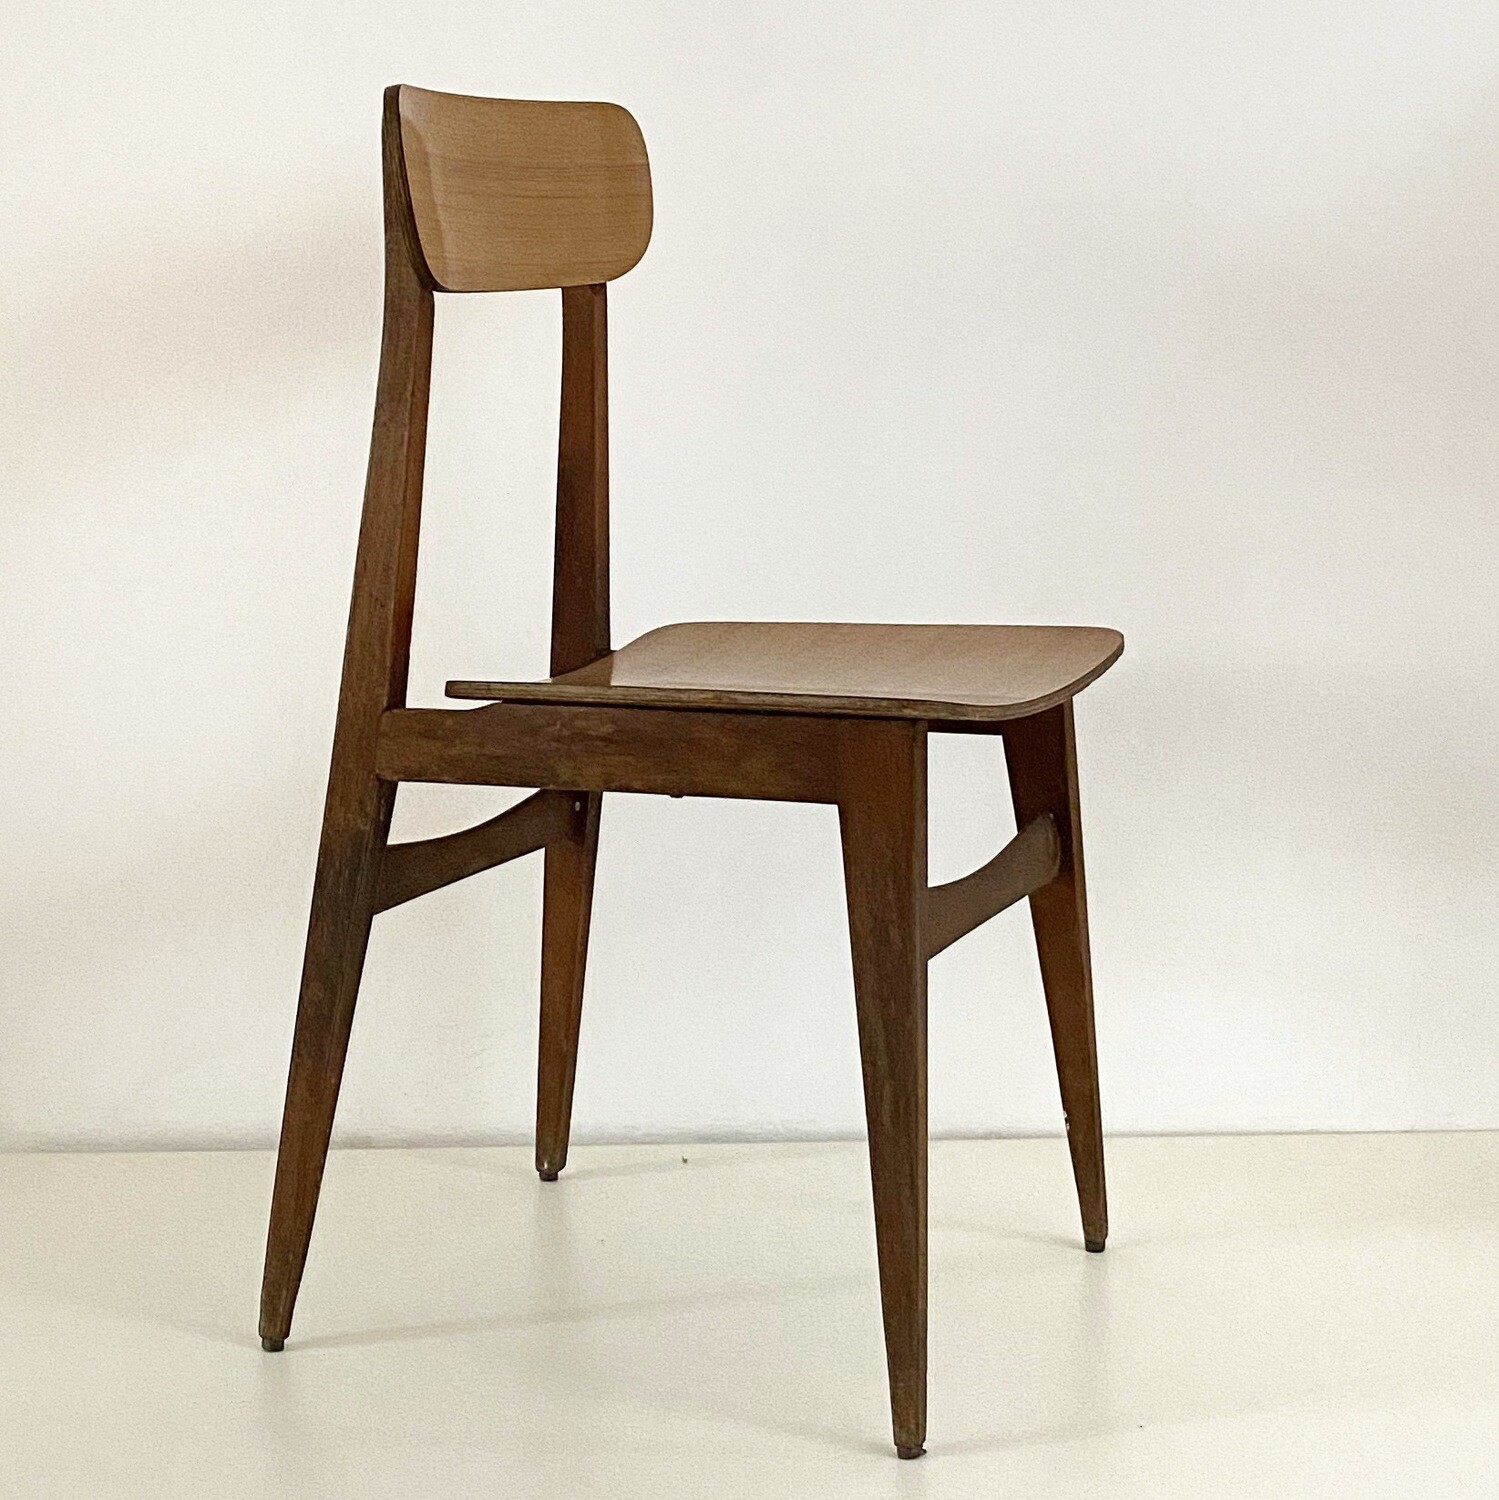 Set of 4 Chairs with solid wood structure and Formica seats